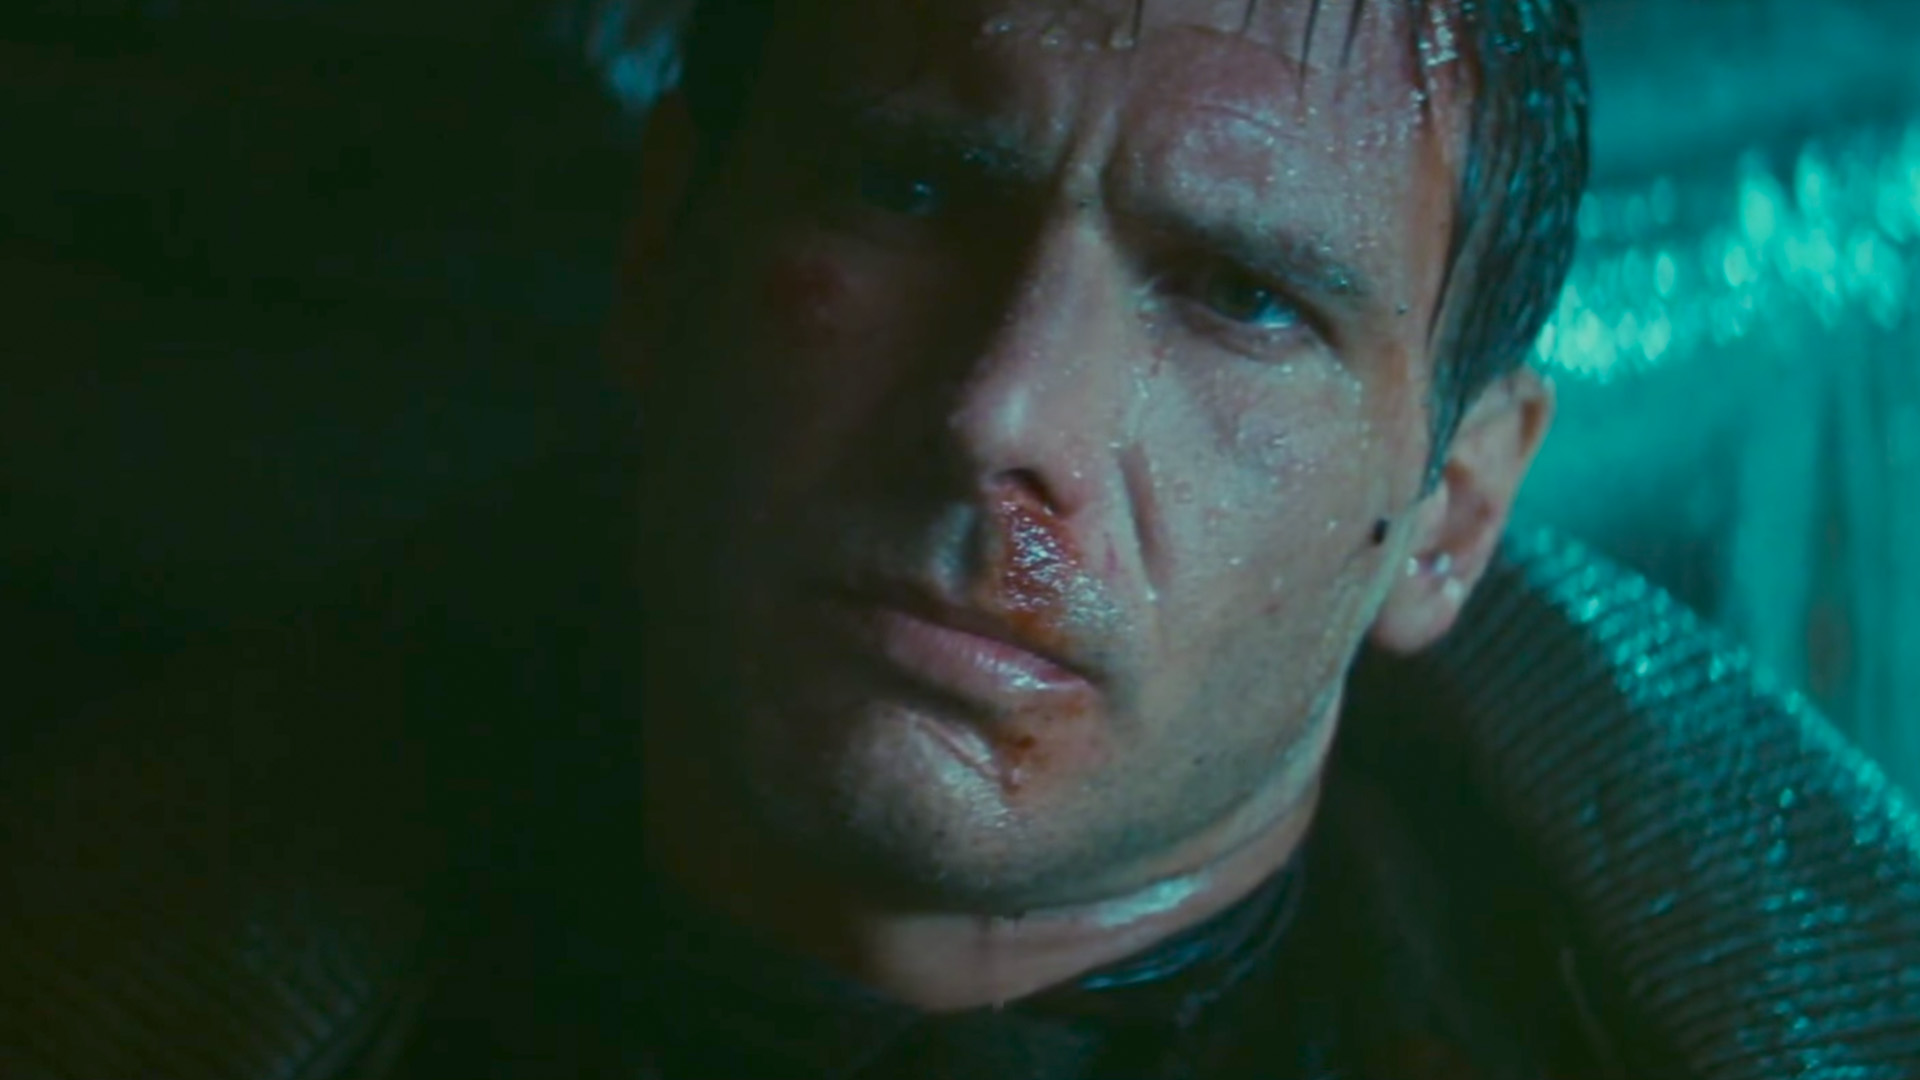 essays on blade runner Humanity in ridley scott's blade runner the issue of humanity is one of the central themes in blade runner countless arguments have taken place over whether or not deckard is a replicant.